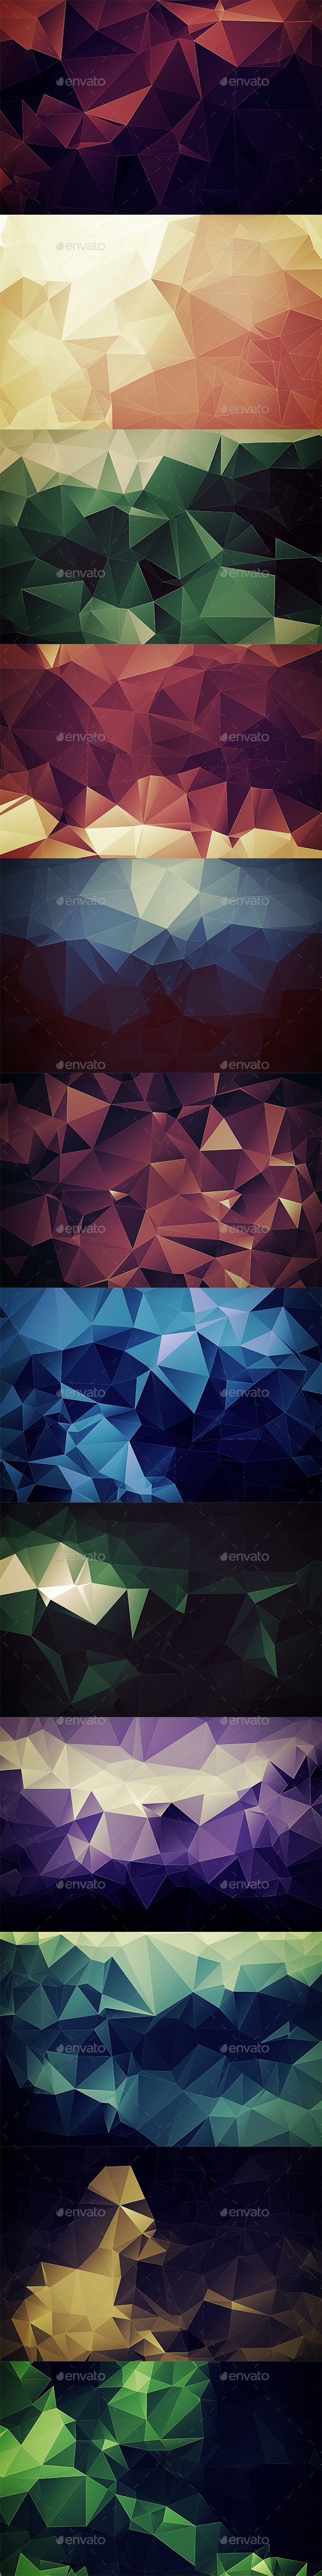 Abstract Polygonal Backgrounds Vol4